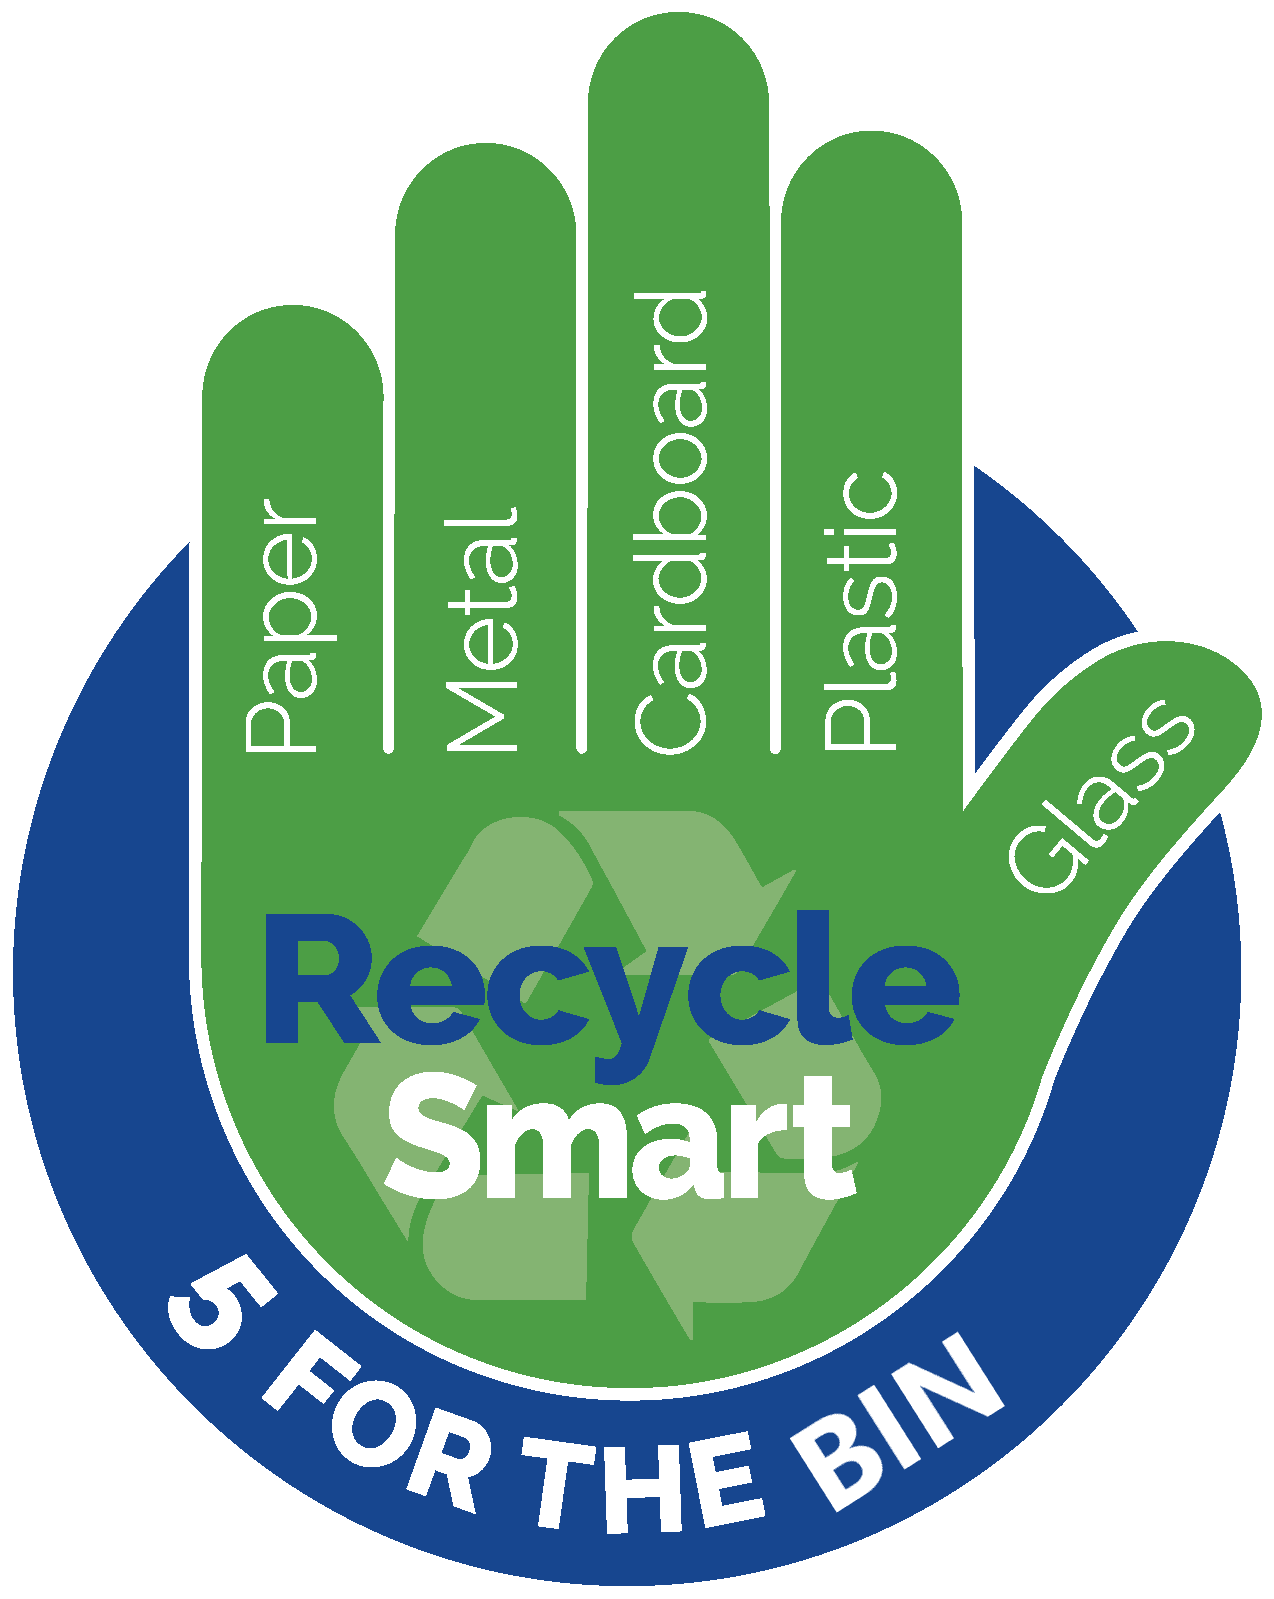 RecycleSmart_CMYK_color_logo